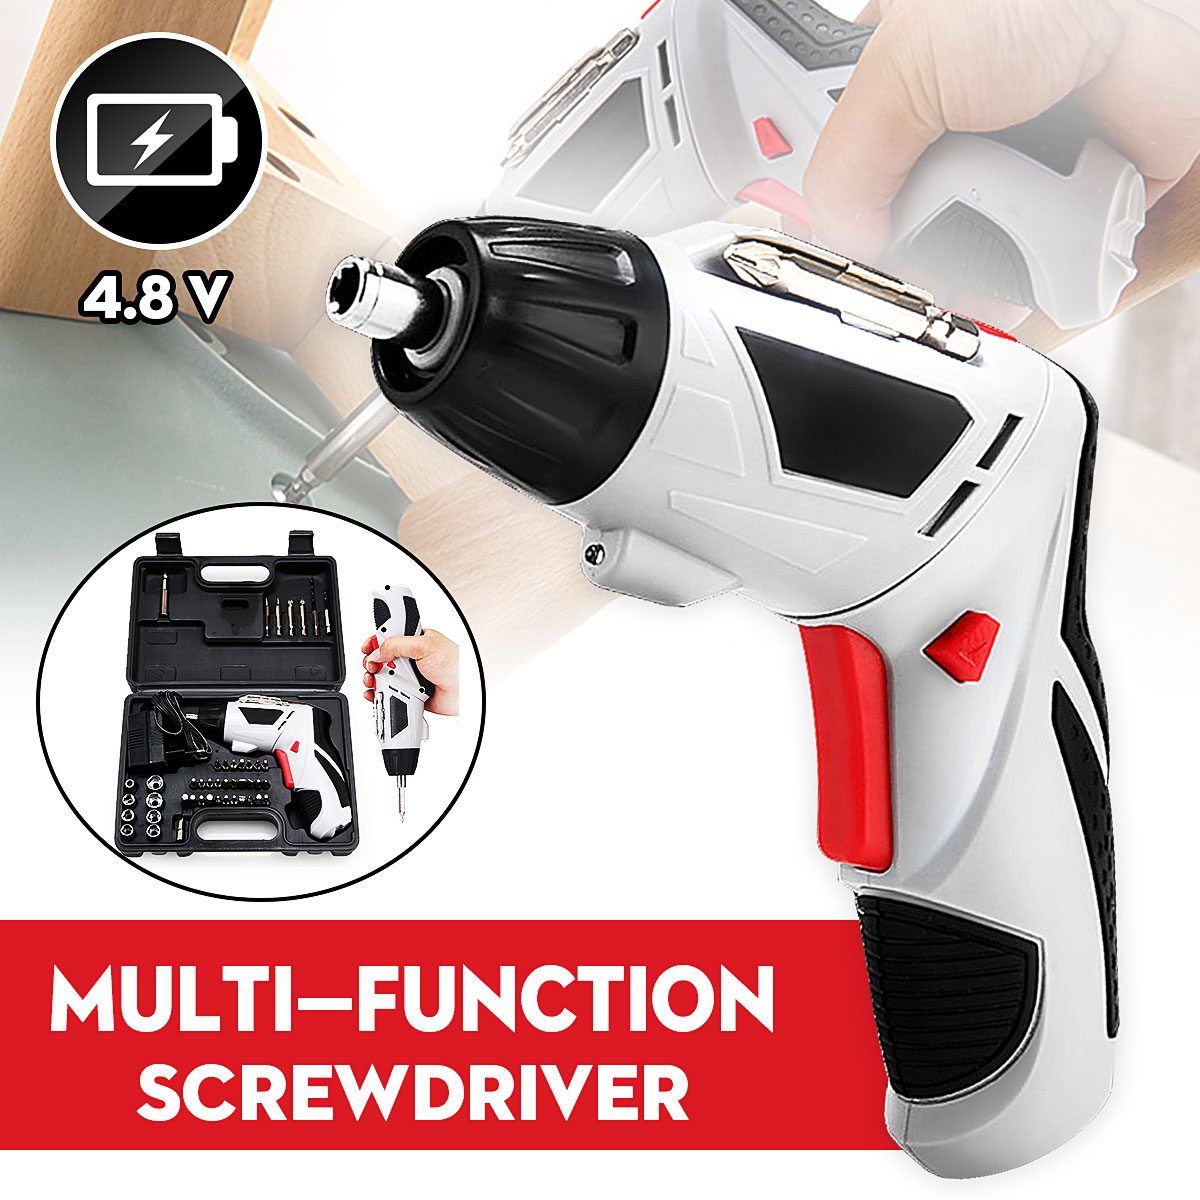 4.8V Mini Cordless Screwdriver With LED Light Multi-function  Household Electric Drill Rechargeable Battery 45 Bits Power Tools